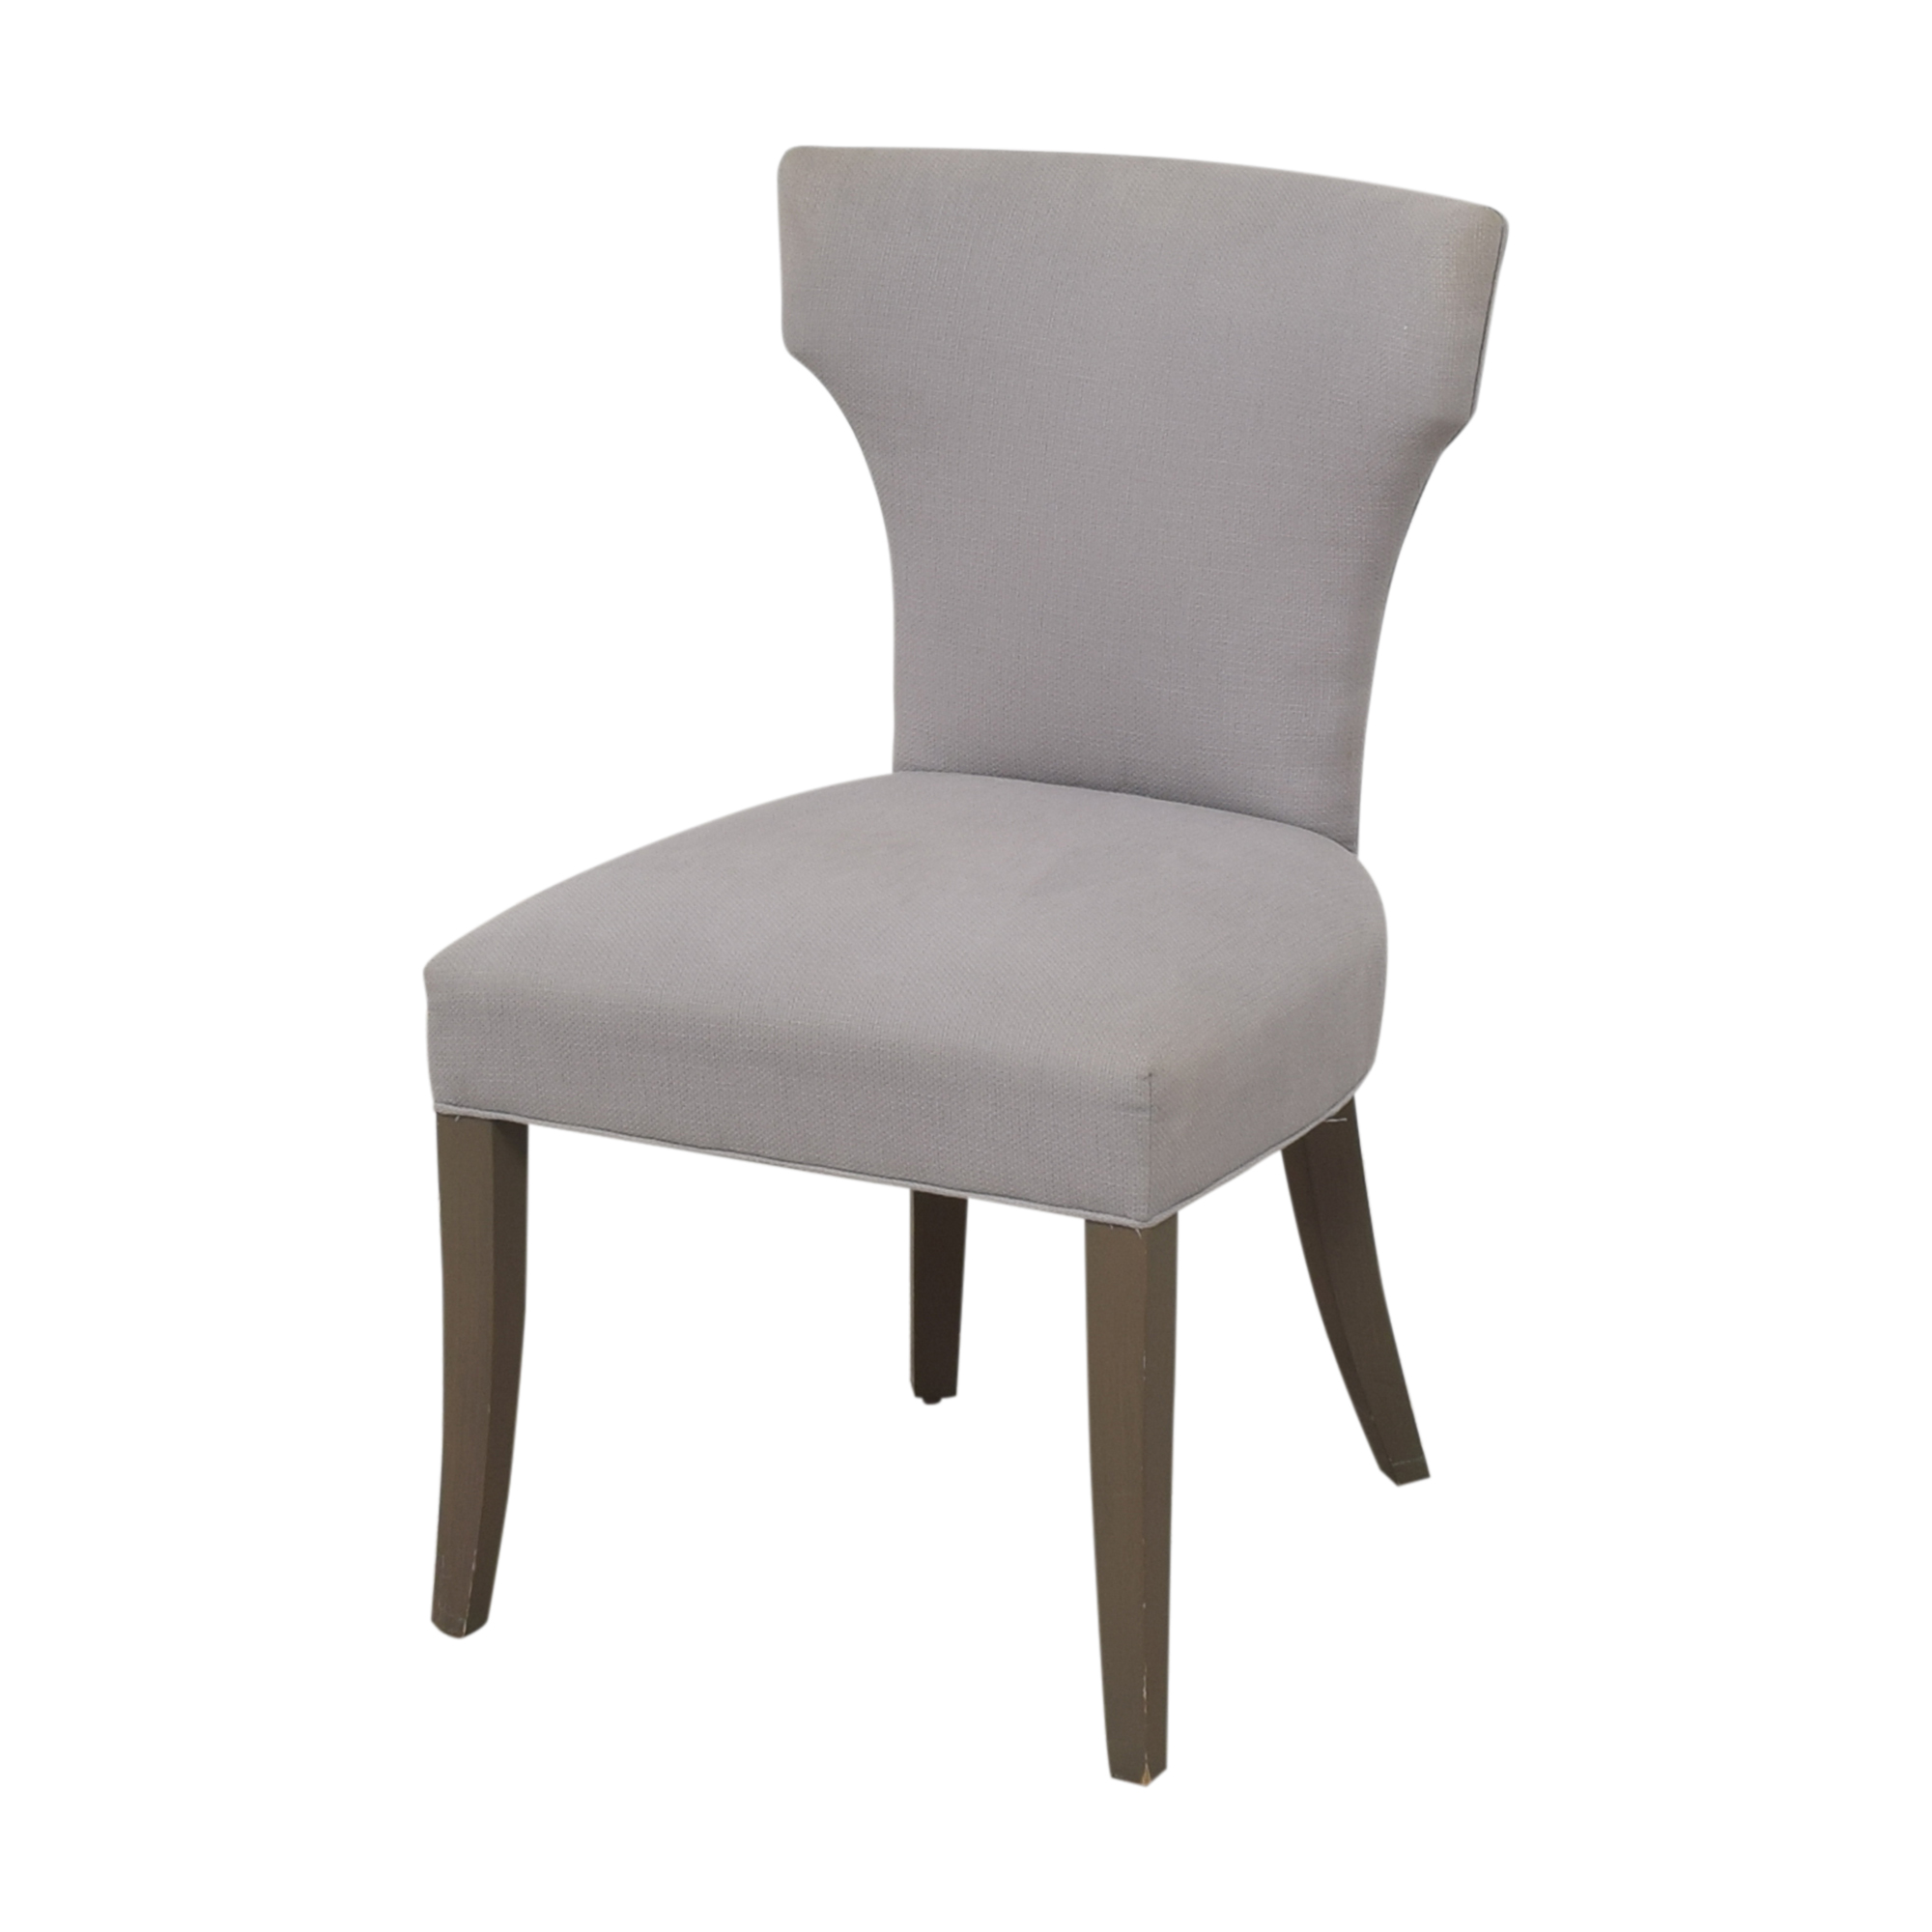 Crate & Barrel Crate & Barrel Sasha Upholstered Dining Side Chair ma